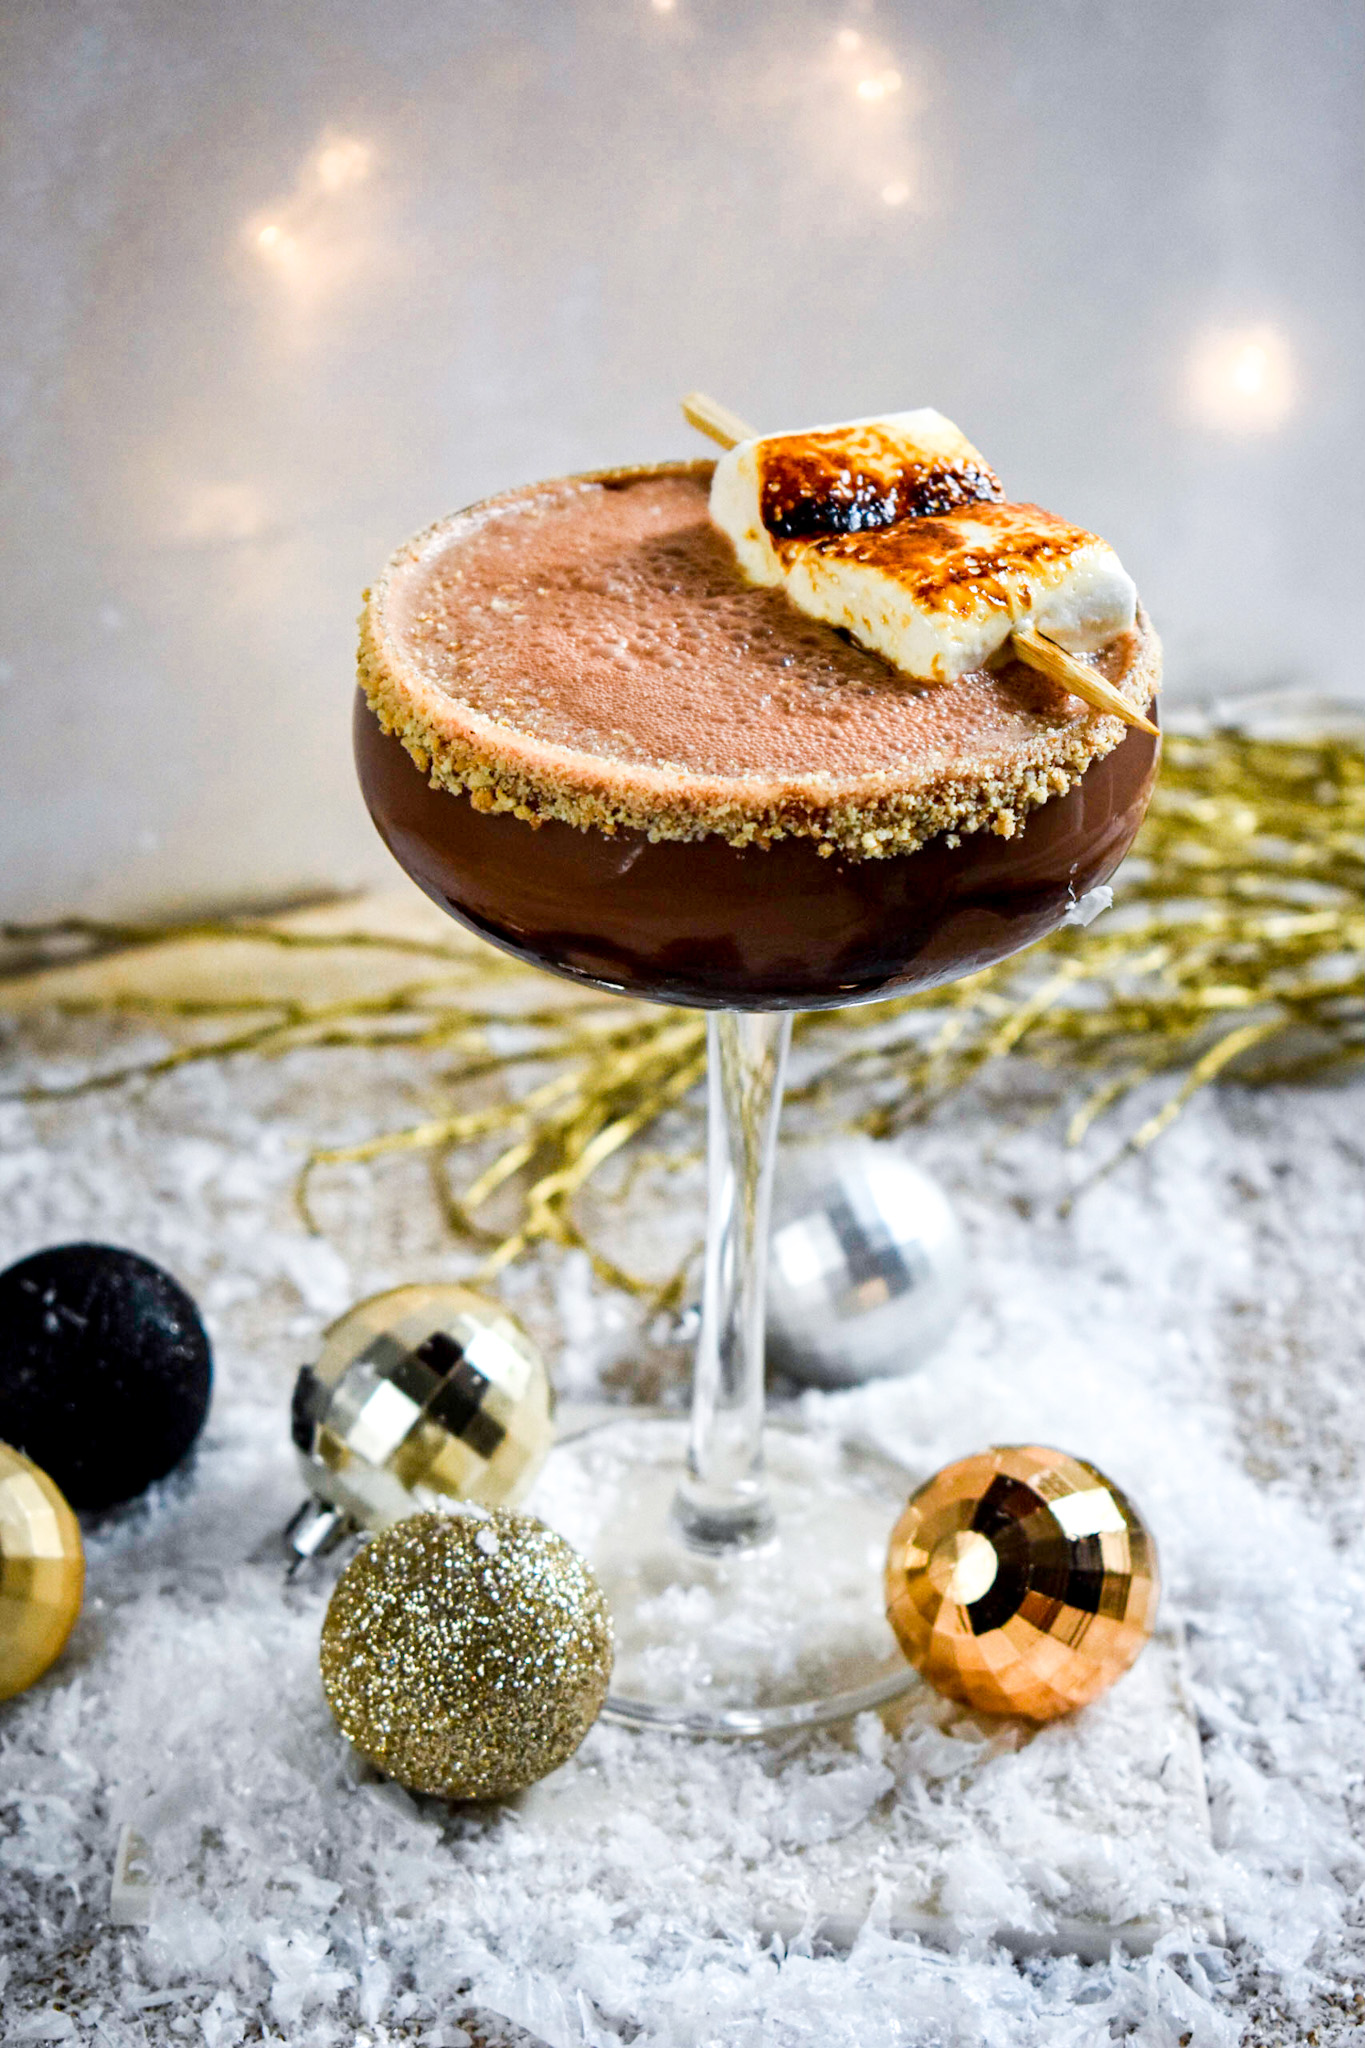 Toasted Smore Cocktail, Smores cocktail, Smore cocktail, chocolate cocktail ideas, chocolate s'more cocktail, s'more cocktail, toasted marshmallow cocktail, toasted marshmallow garnish, toasted marshmallow drink, cocktail ideas marshmallow, cocktail ideas chocolate, gastrogays Lidl cocktail, Gastrogays cocktail, GastroGays cocktail classes, cocktail events gastrogays